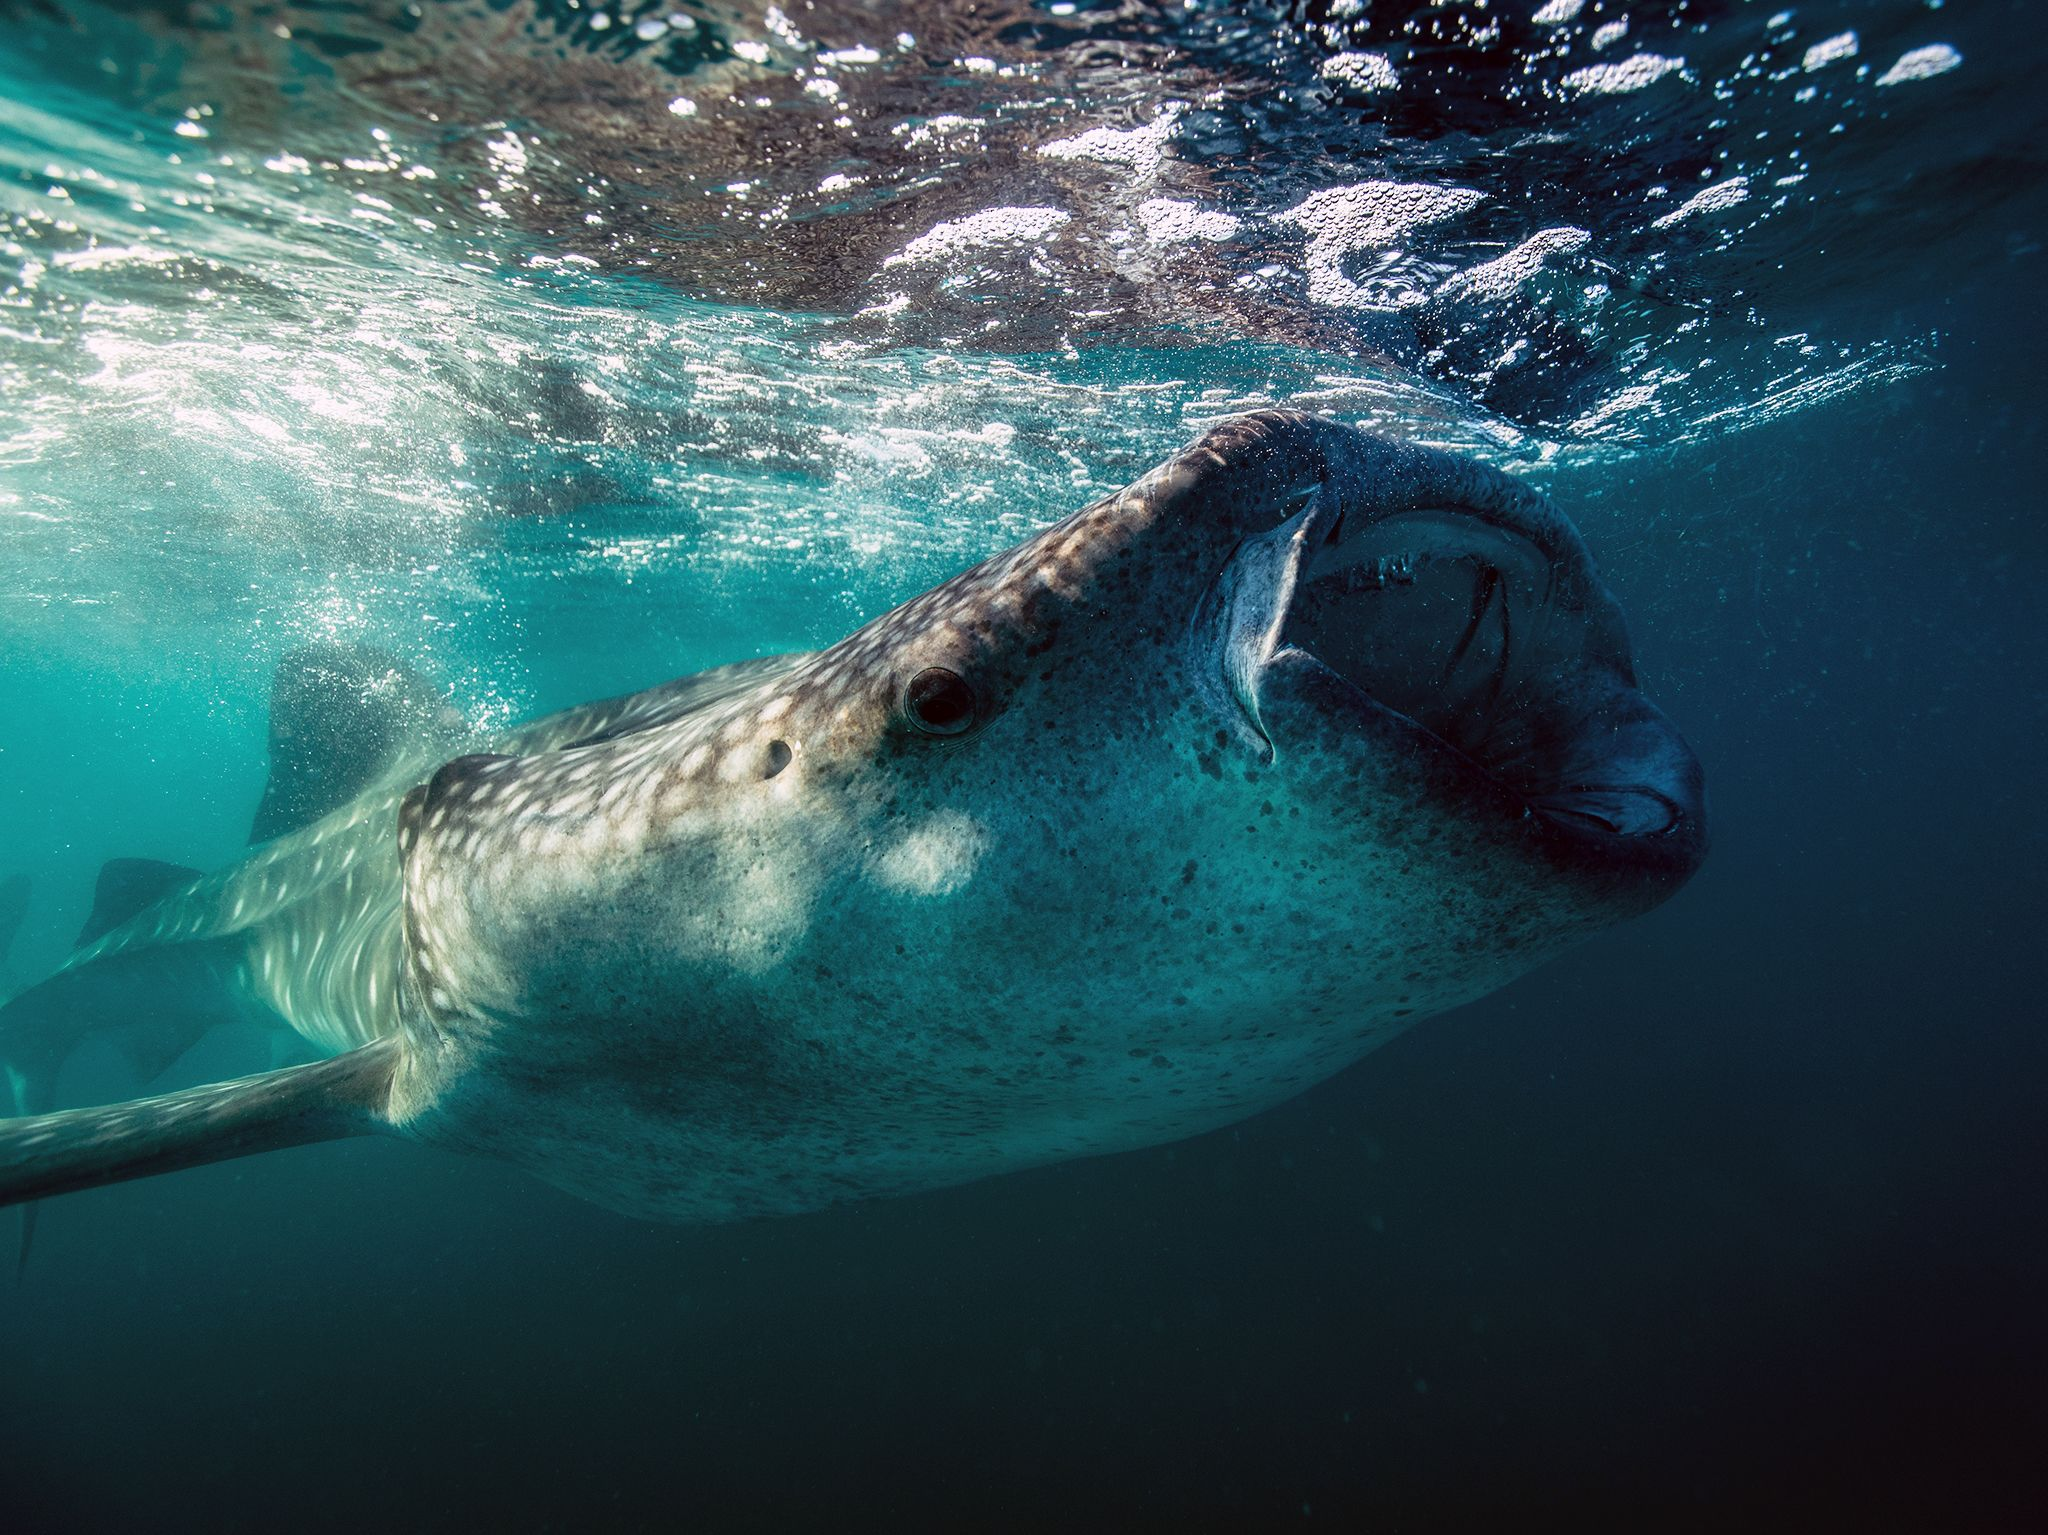 Sea Of Cortez, Mexico:  A juvenile Whale shark gorges on plankton at the surface during a... [Foto del giorno - November 2018]